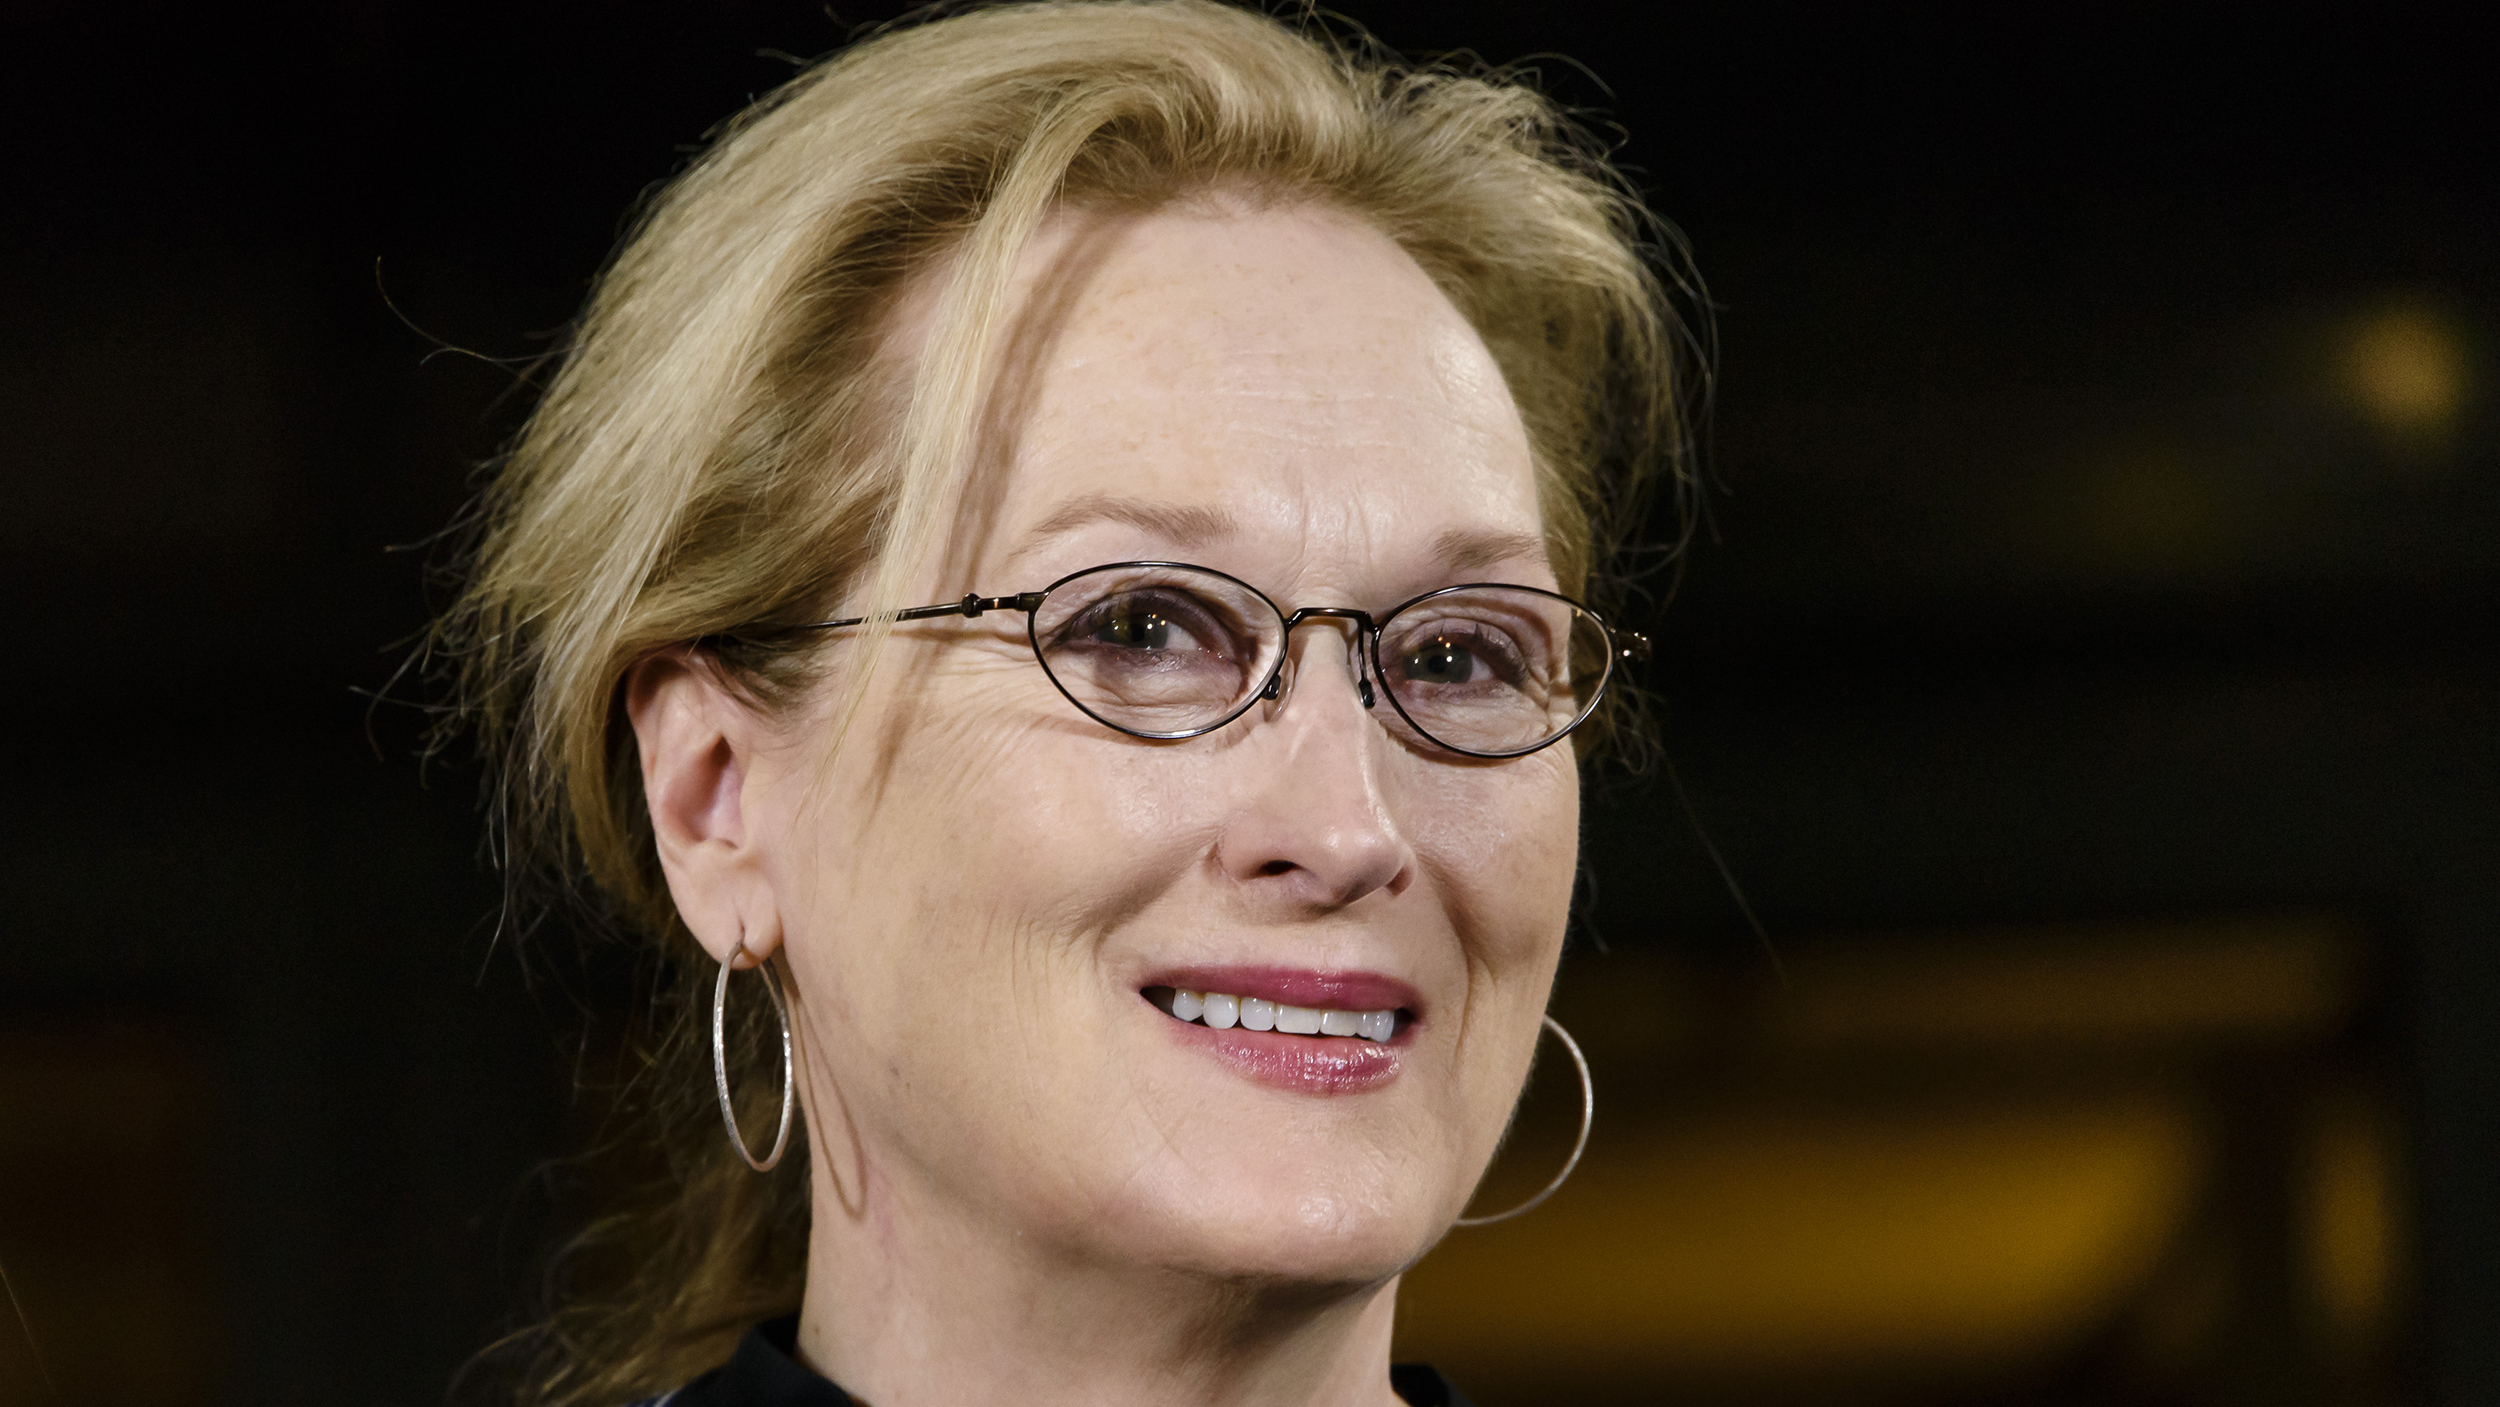 How old is meryl streep now